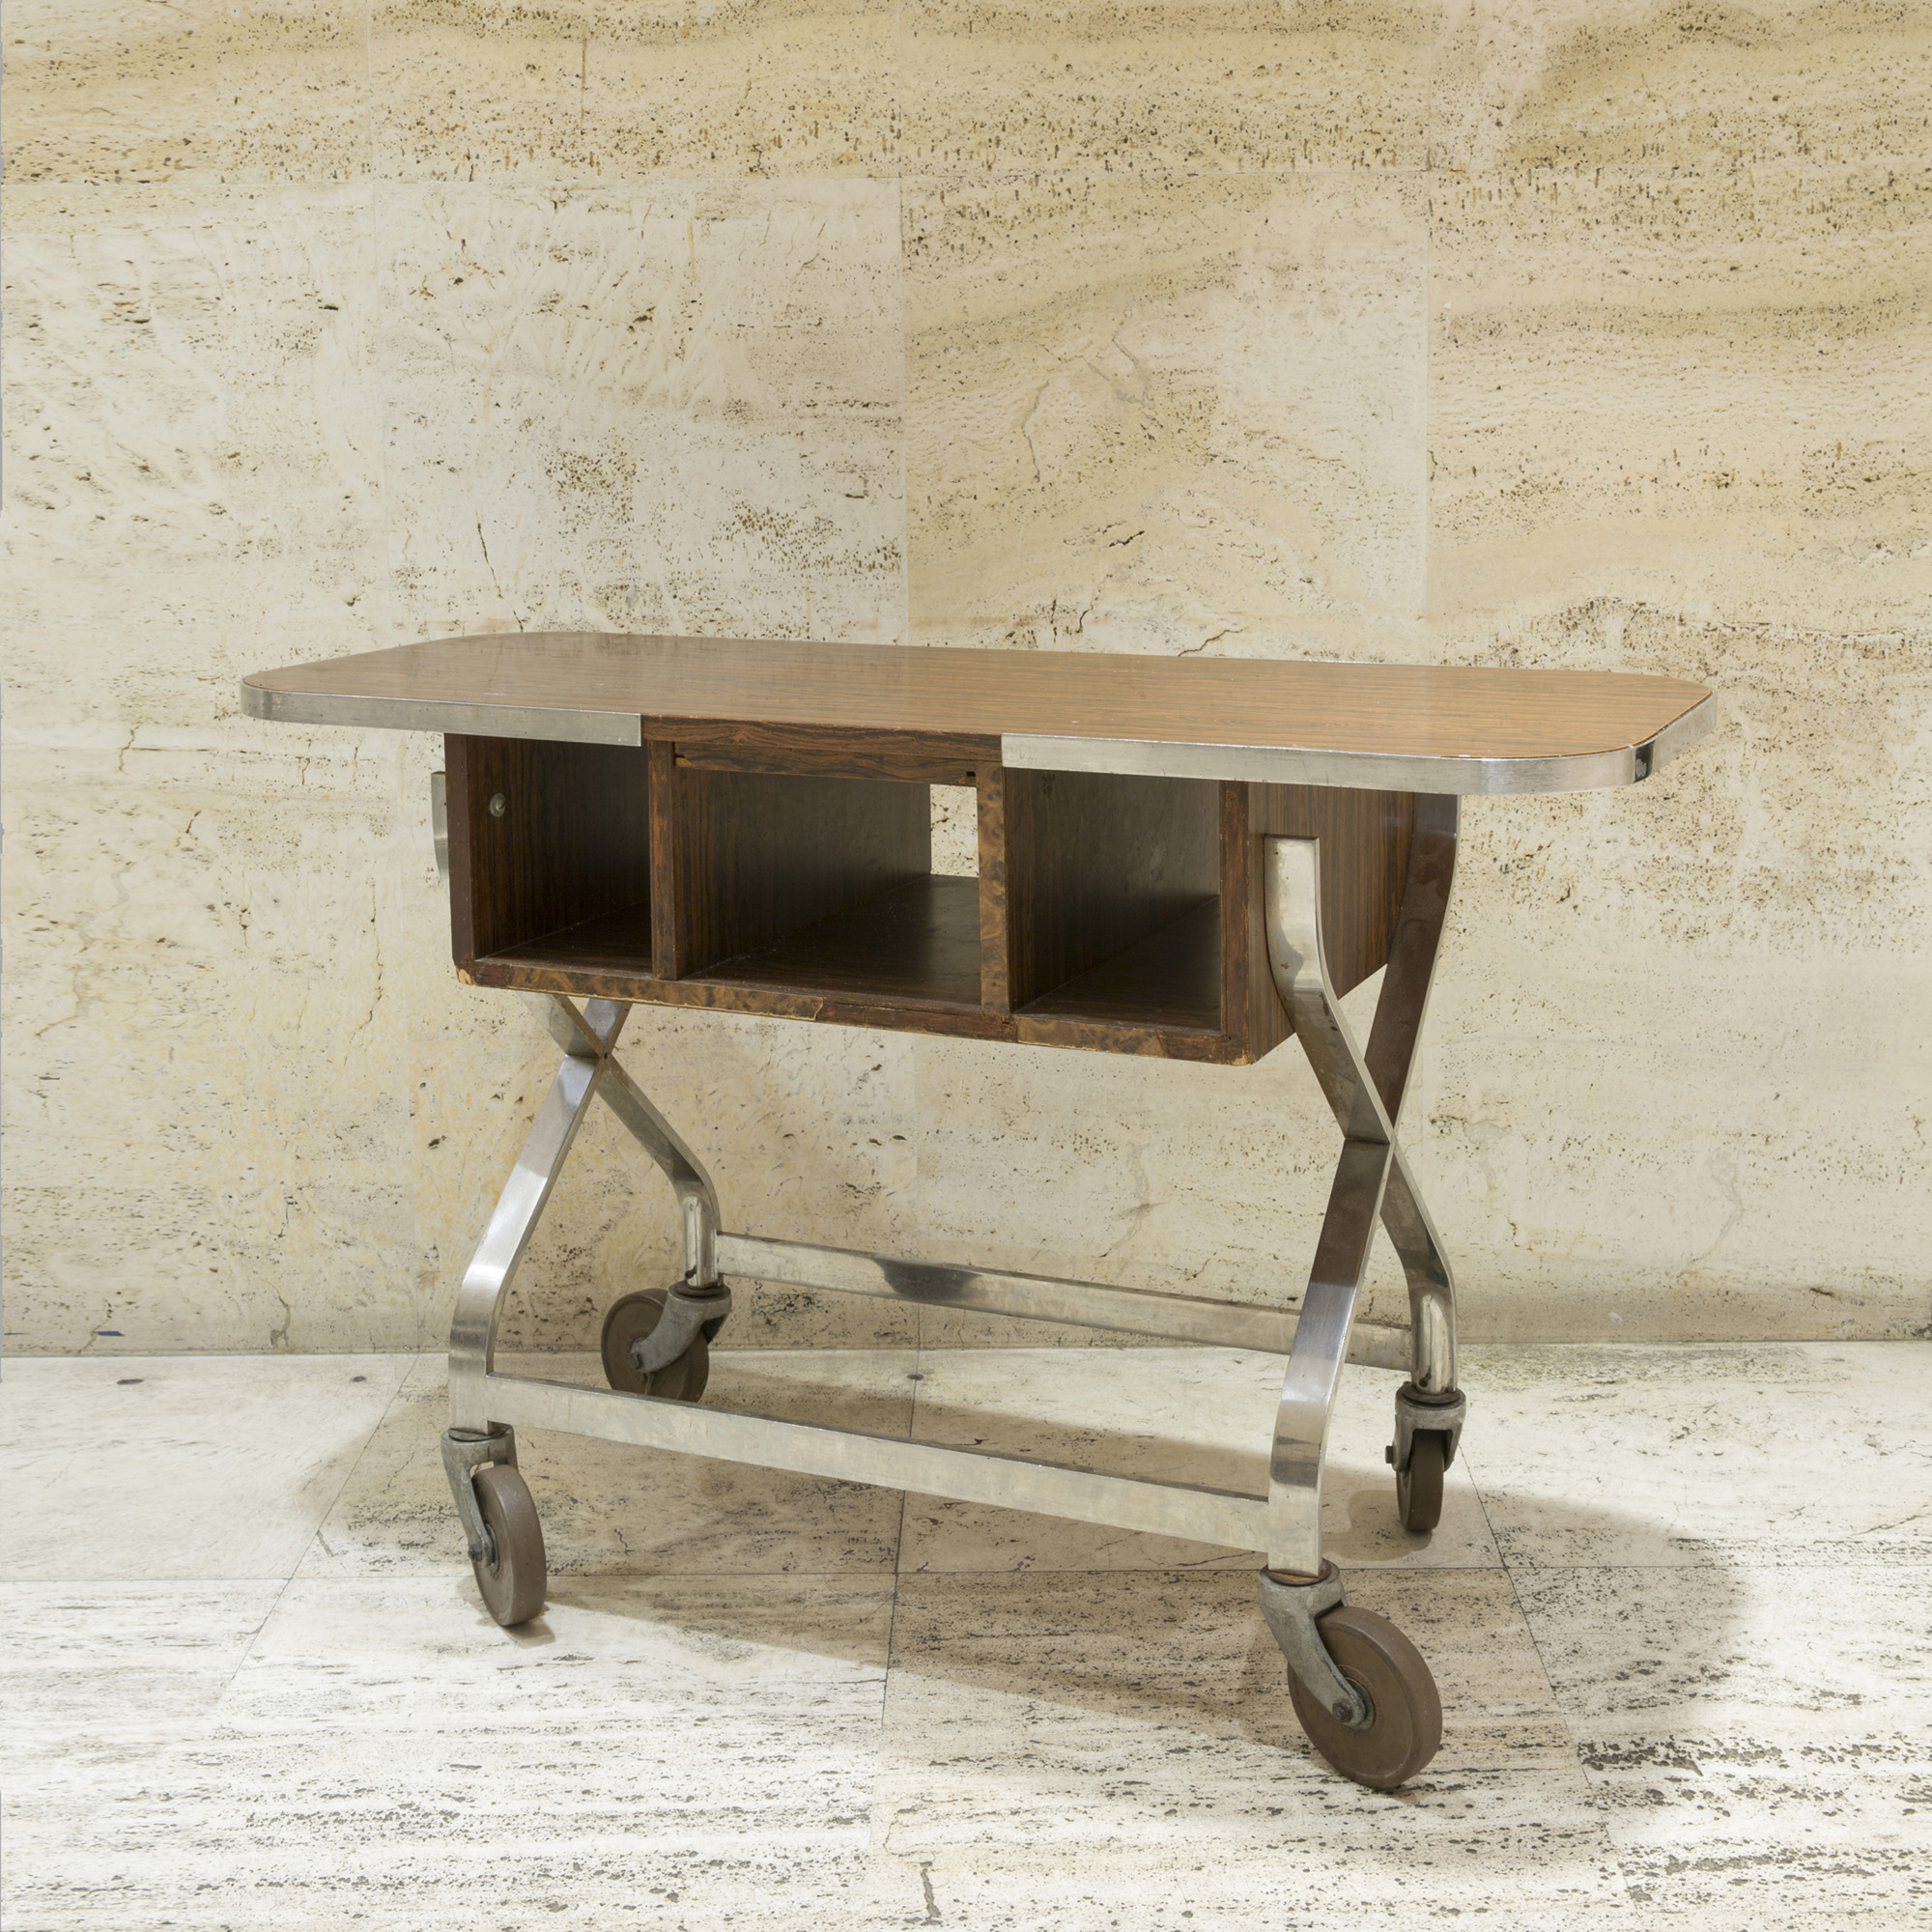 804: Garth and Ada Louise Huxtable / Serving cart from The Four Seasons (1 of 1)